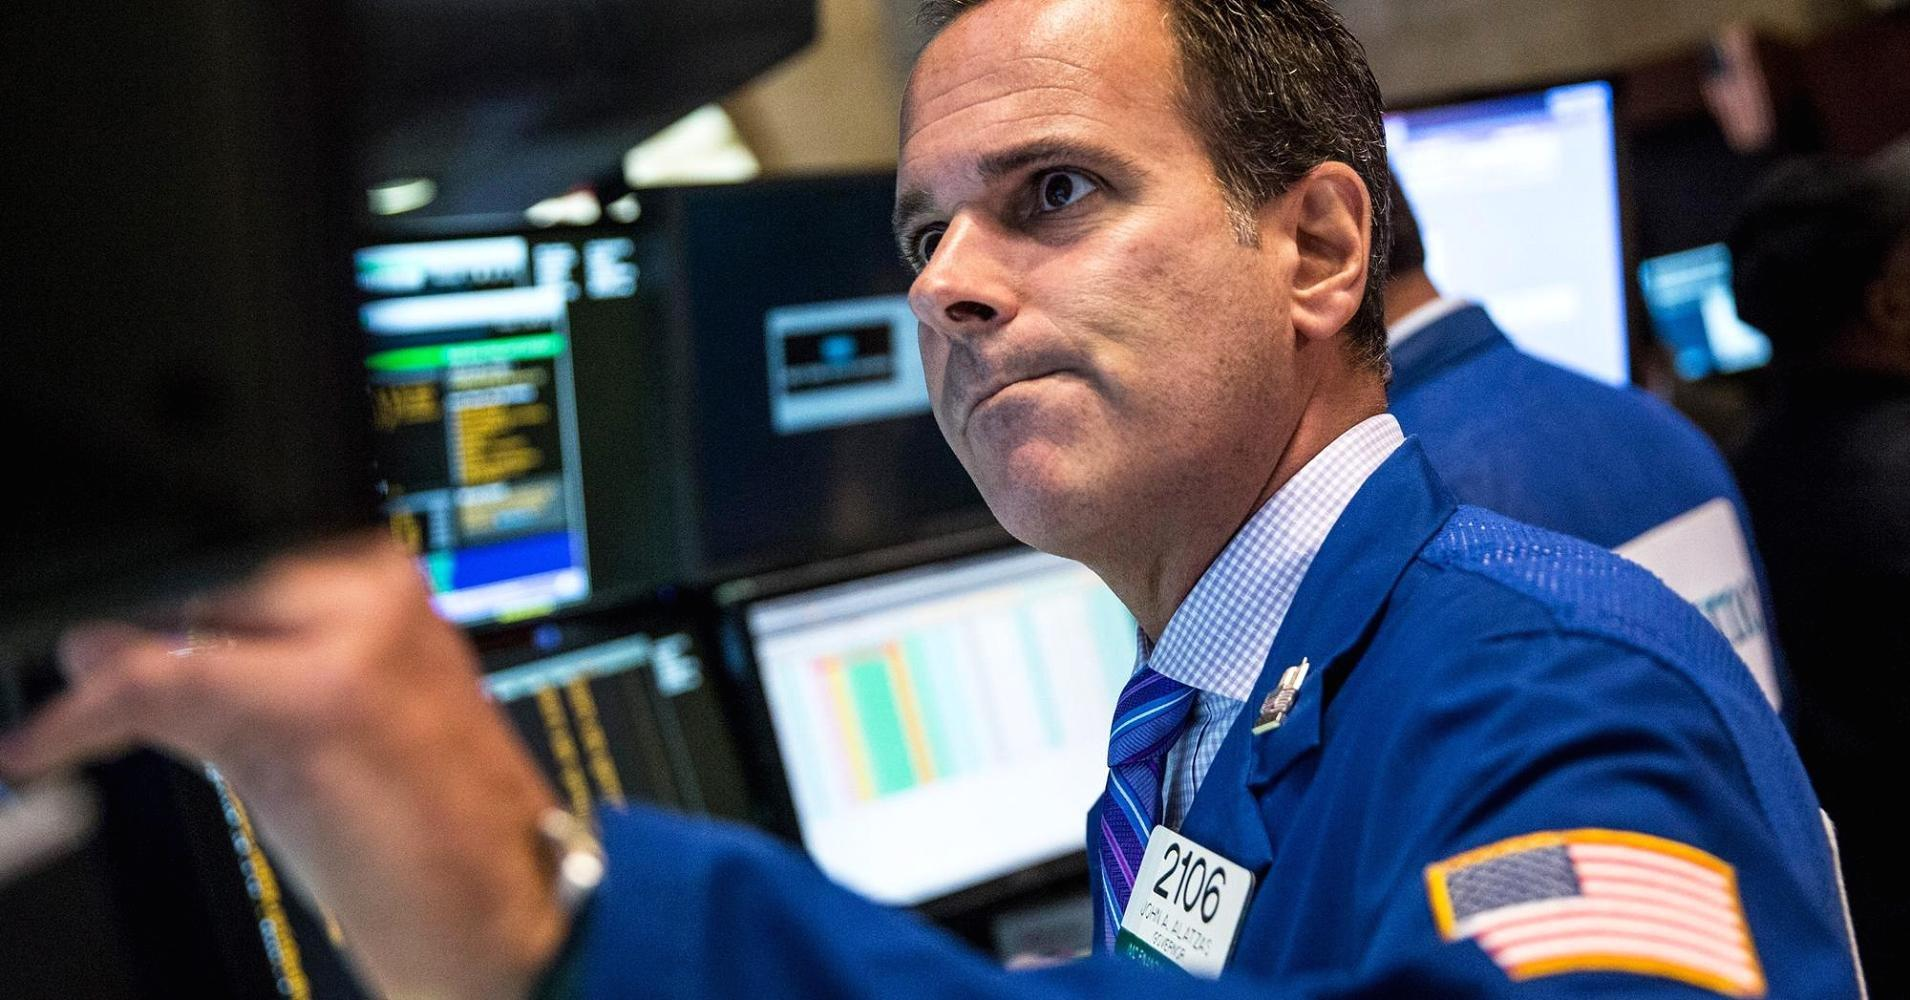 Early movers: BBY, SJM, MON, MDT, PNRA, SONC, PLAY, DRI, SQ & more